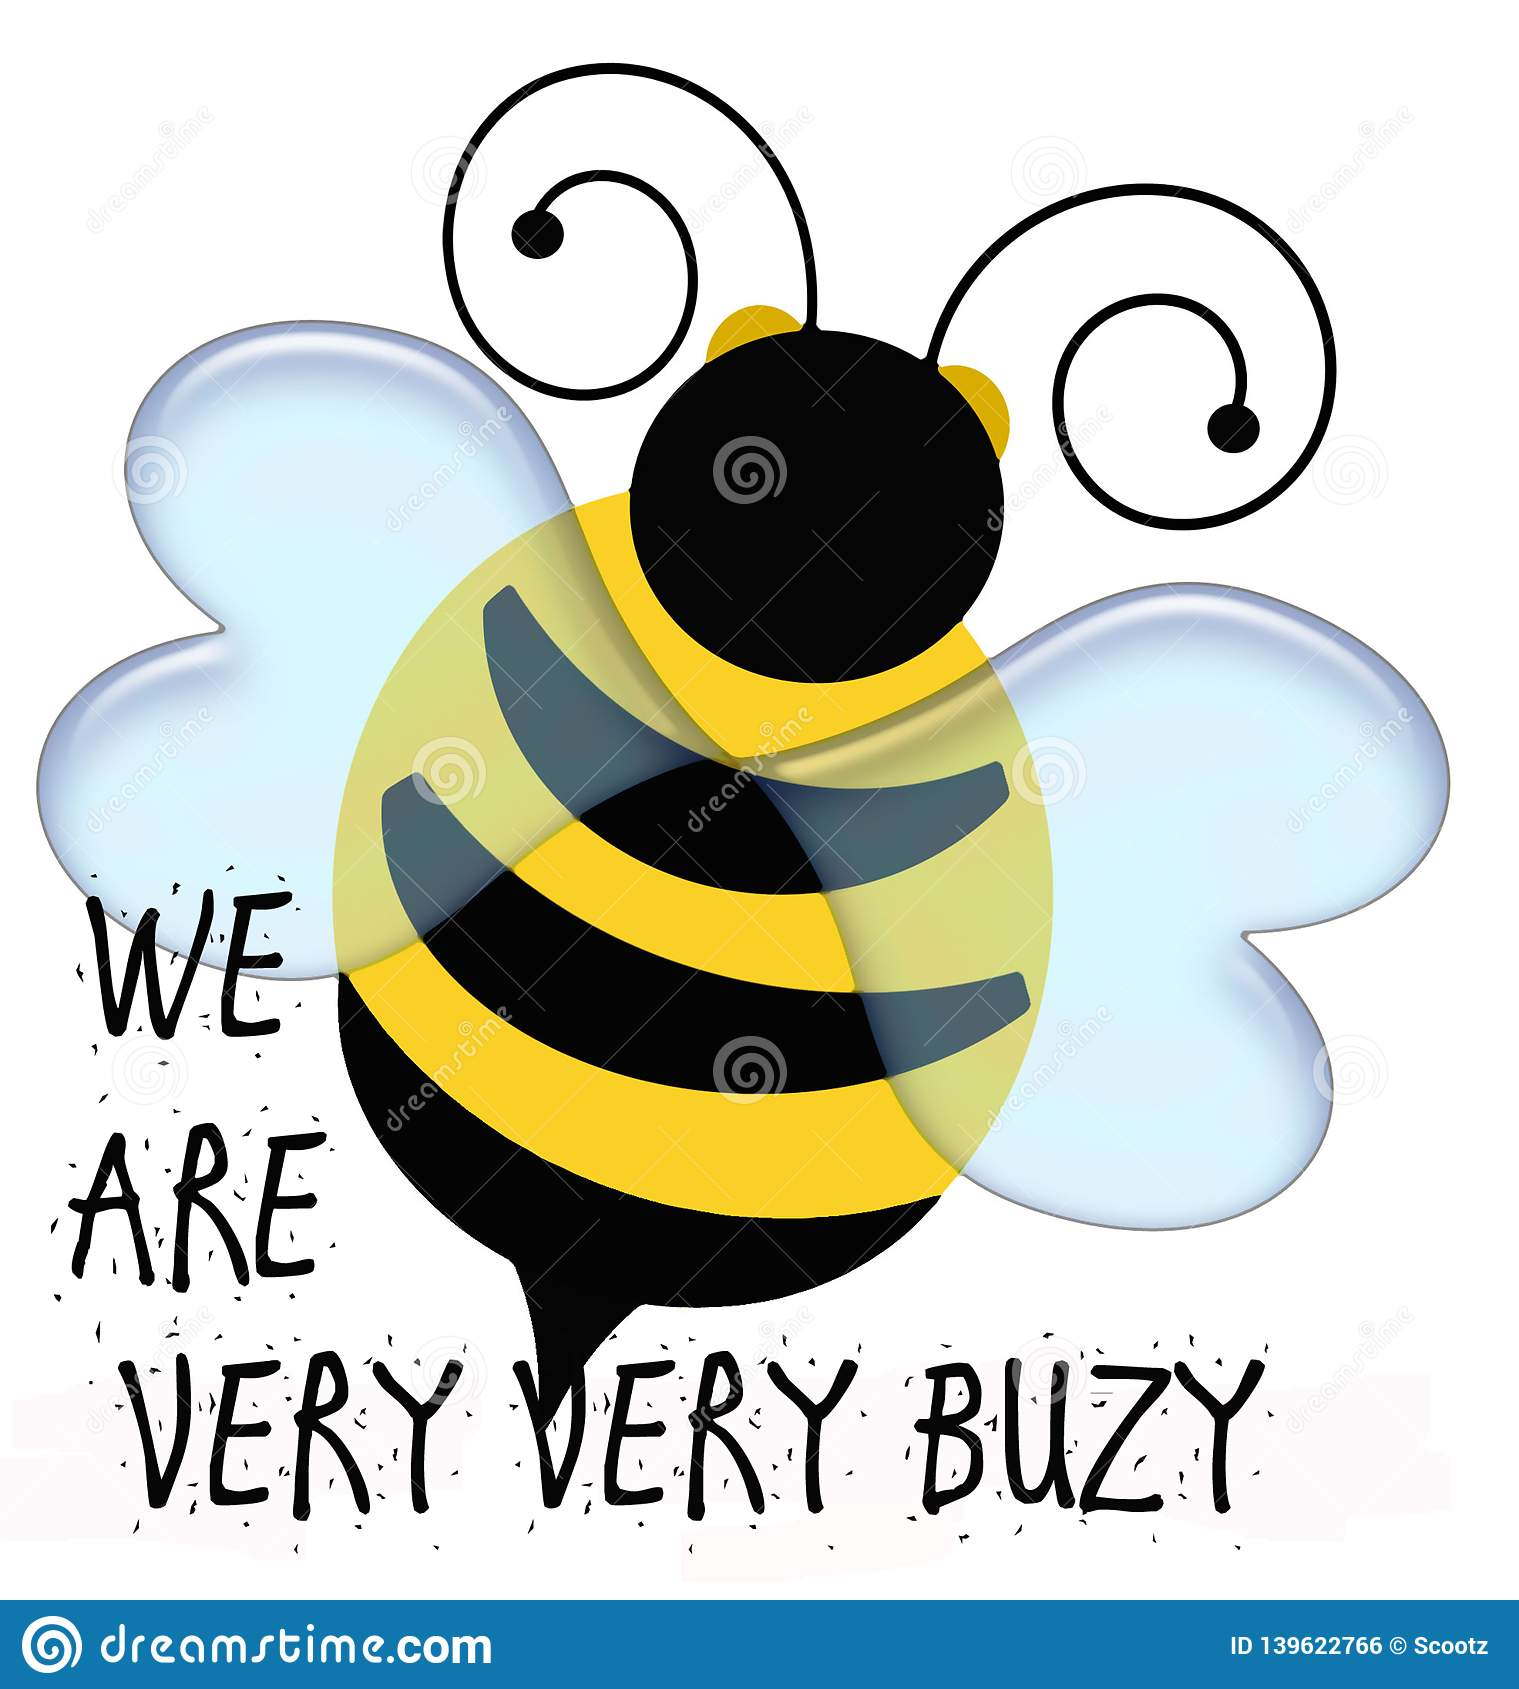 Yellow and black bumble bee illustration